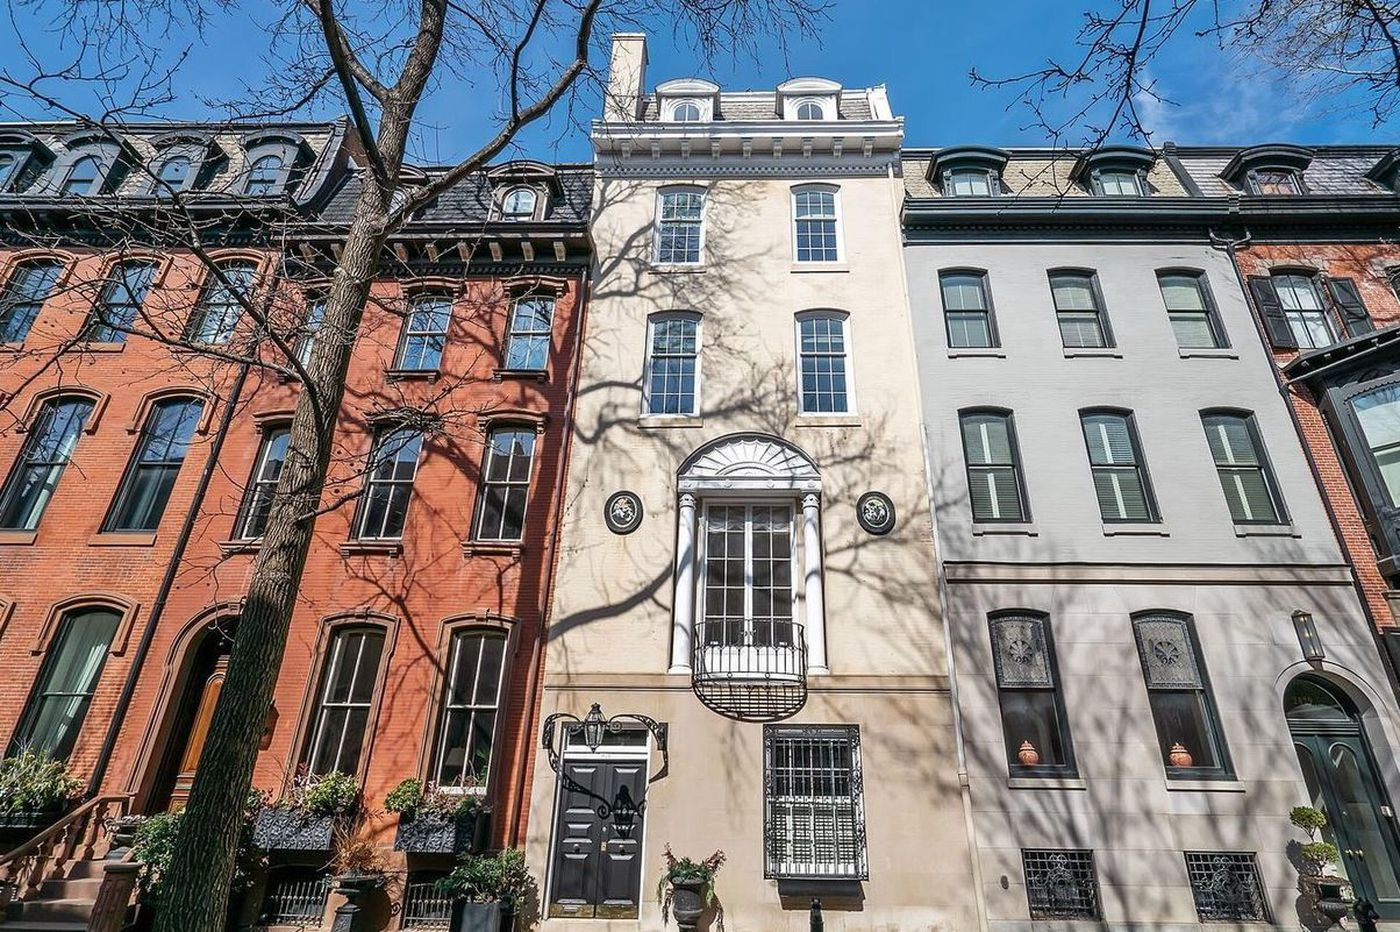 On the market: Five-story, 7,000-square-foot home on Delancey Place for $3,995,000